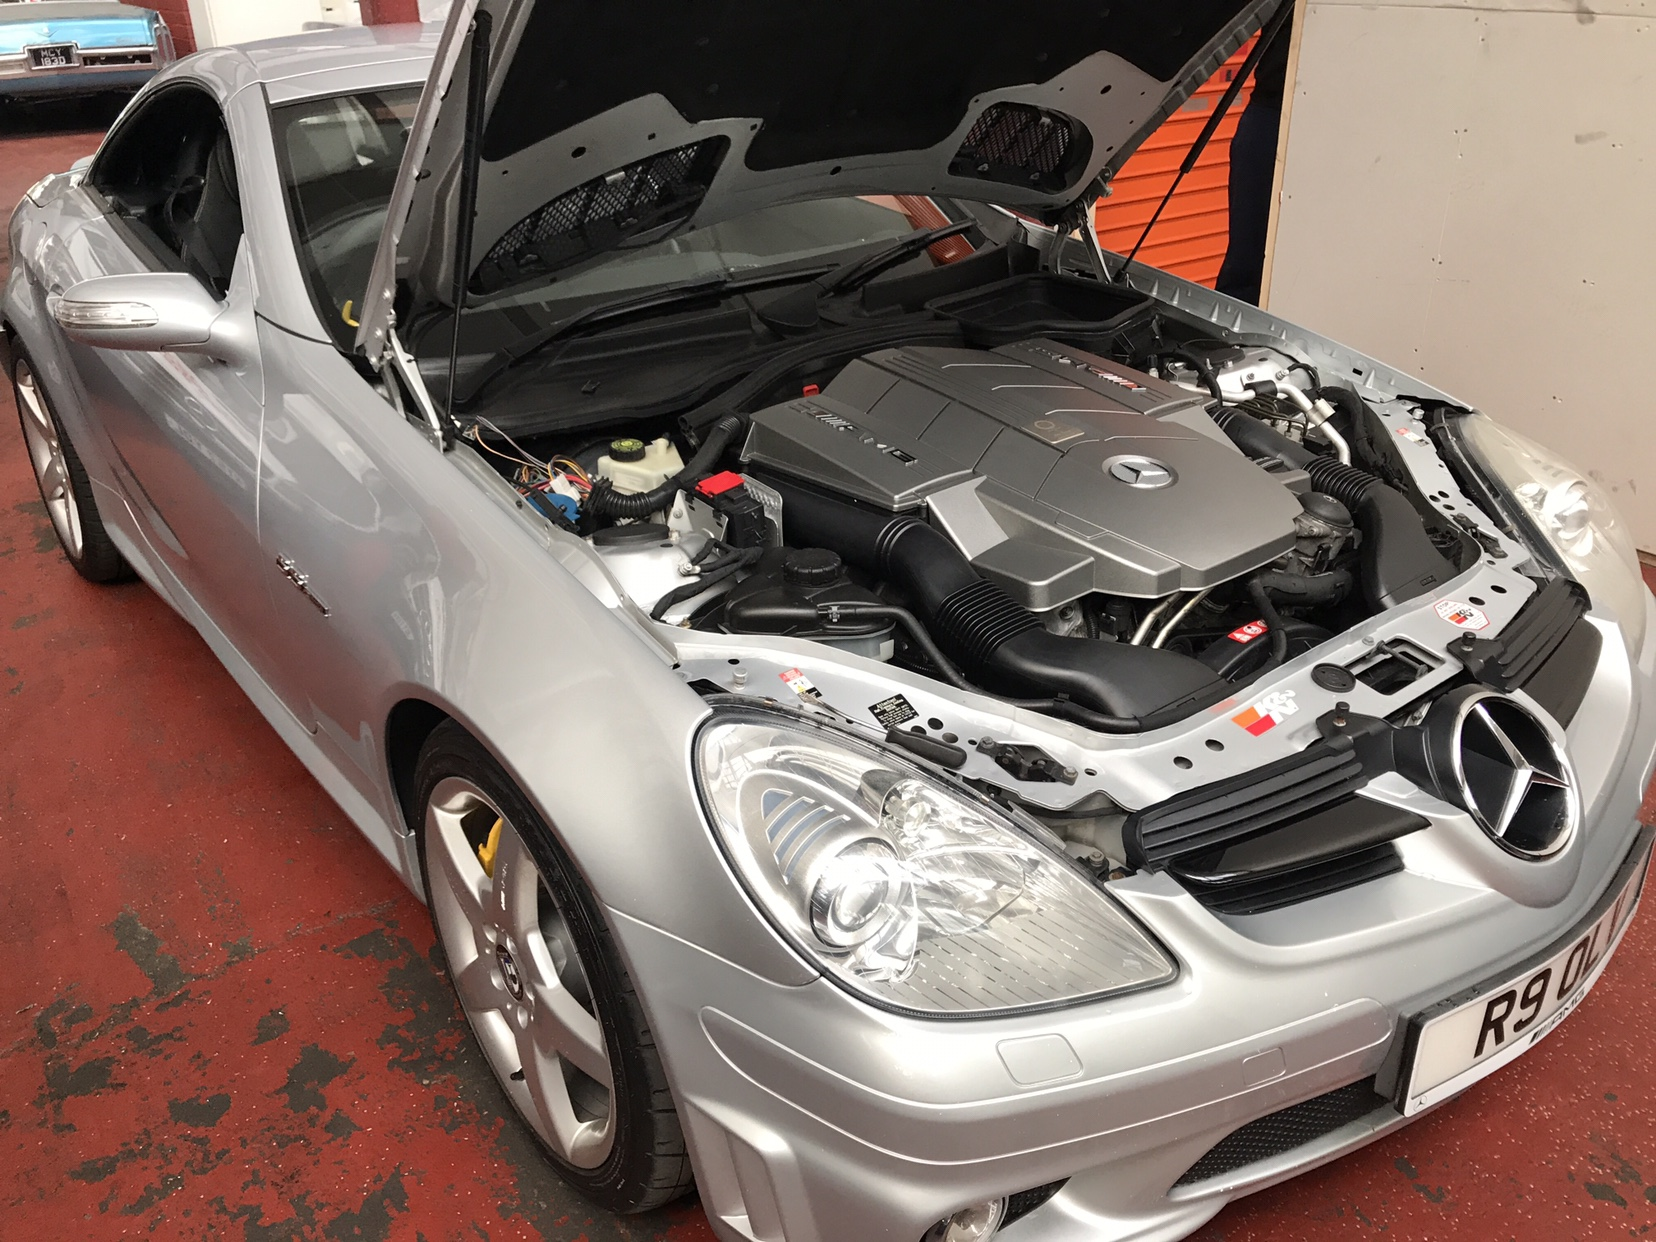 Need Some Help With Secondary Air Pump Injection Fault Mercedes Smart Fortwo Fuse Box Location Cheers